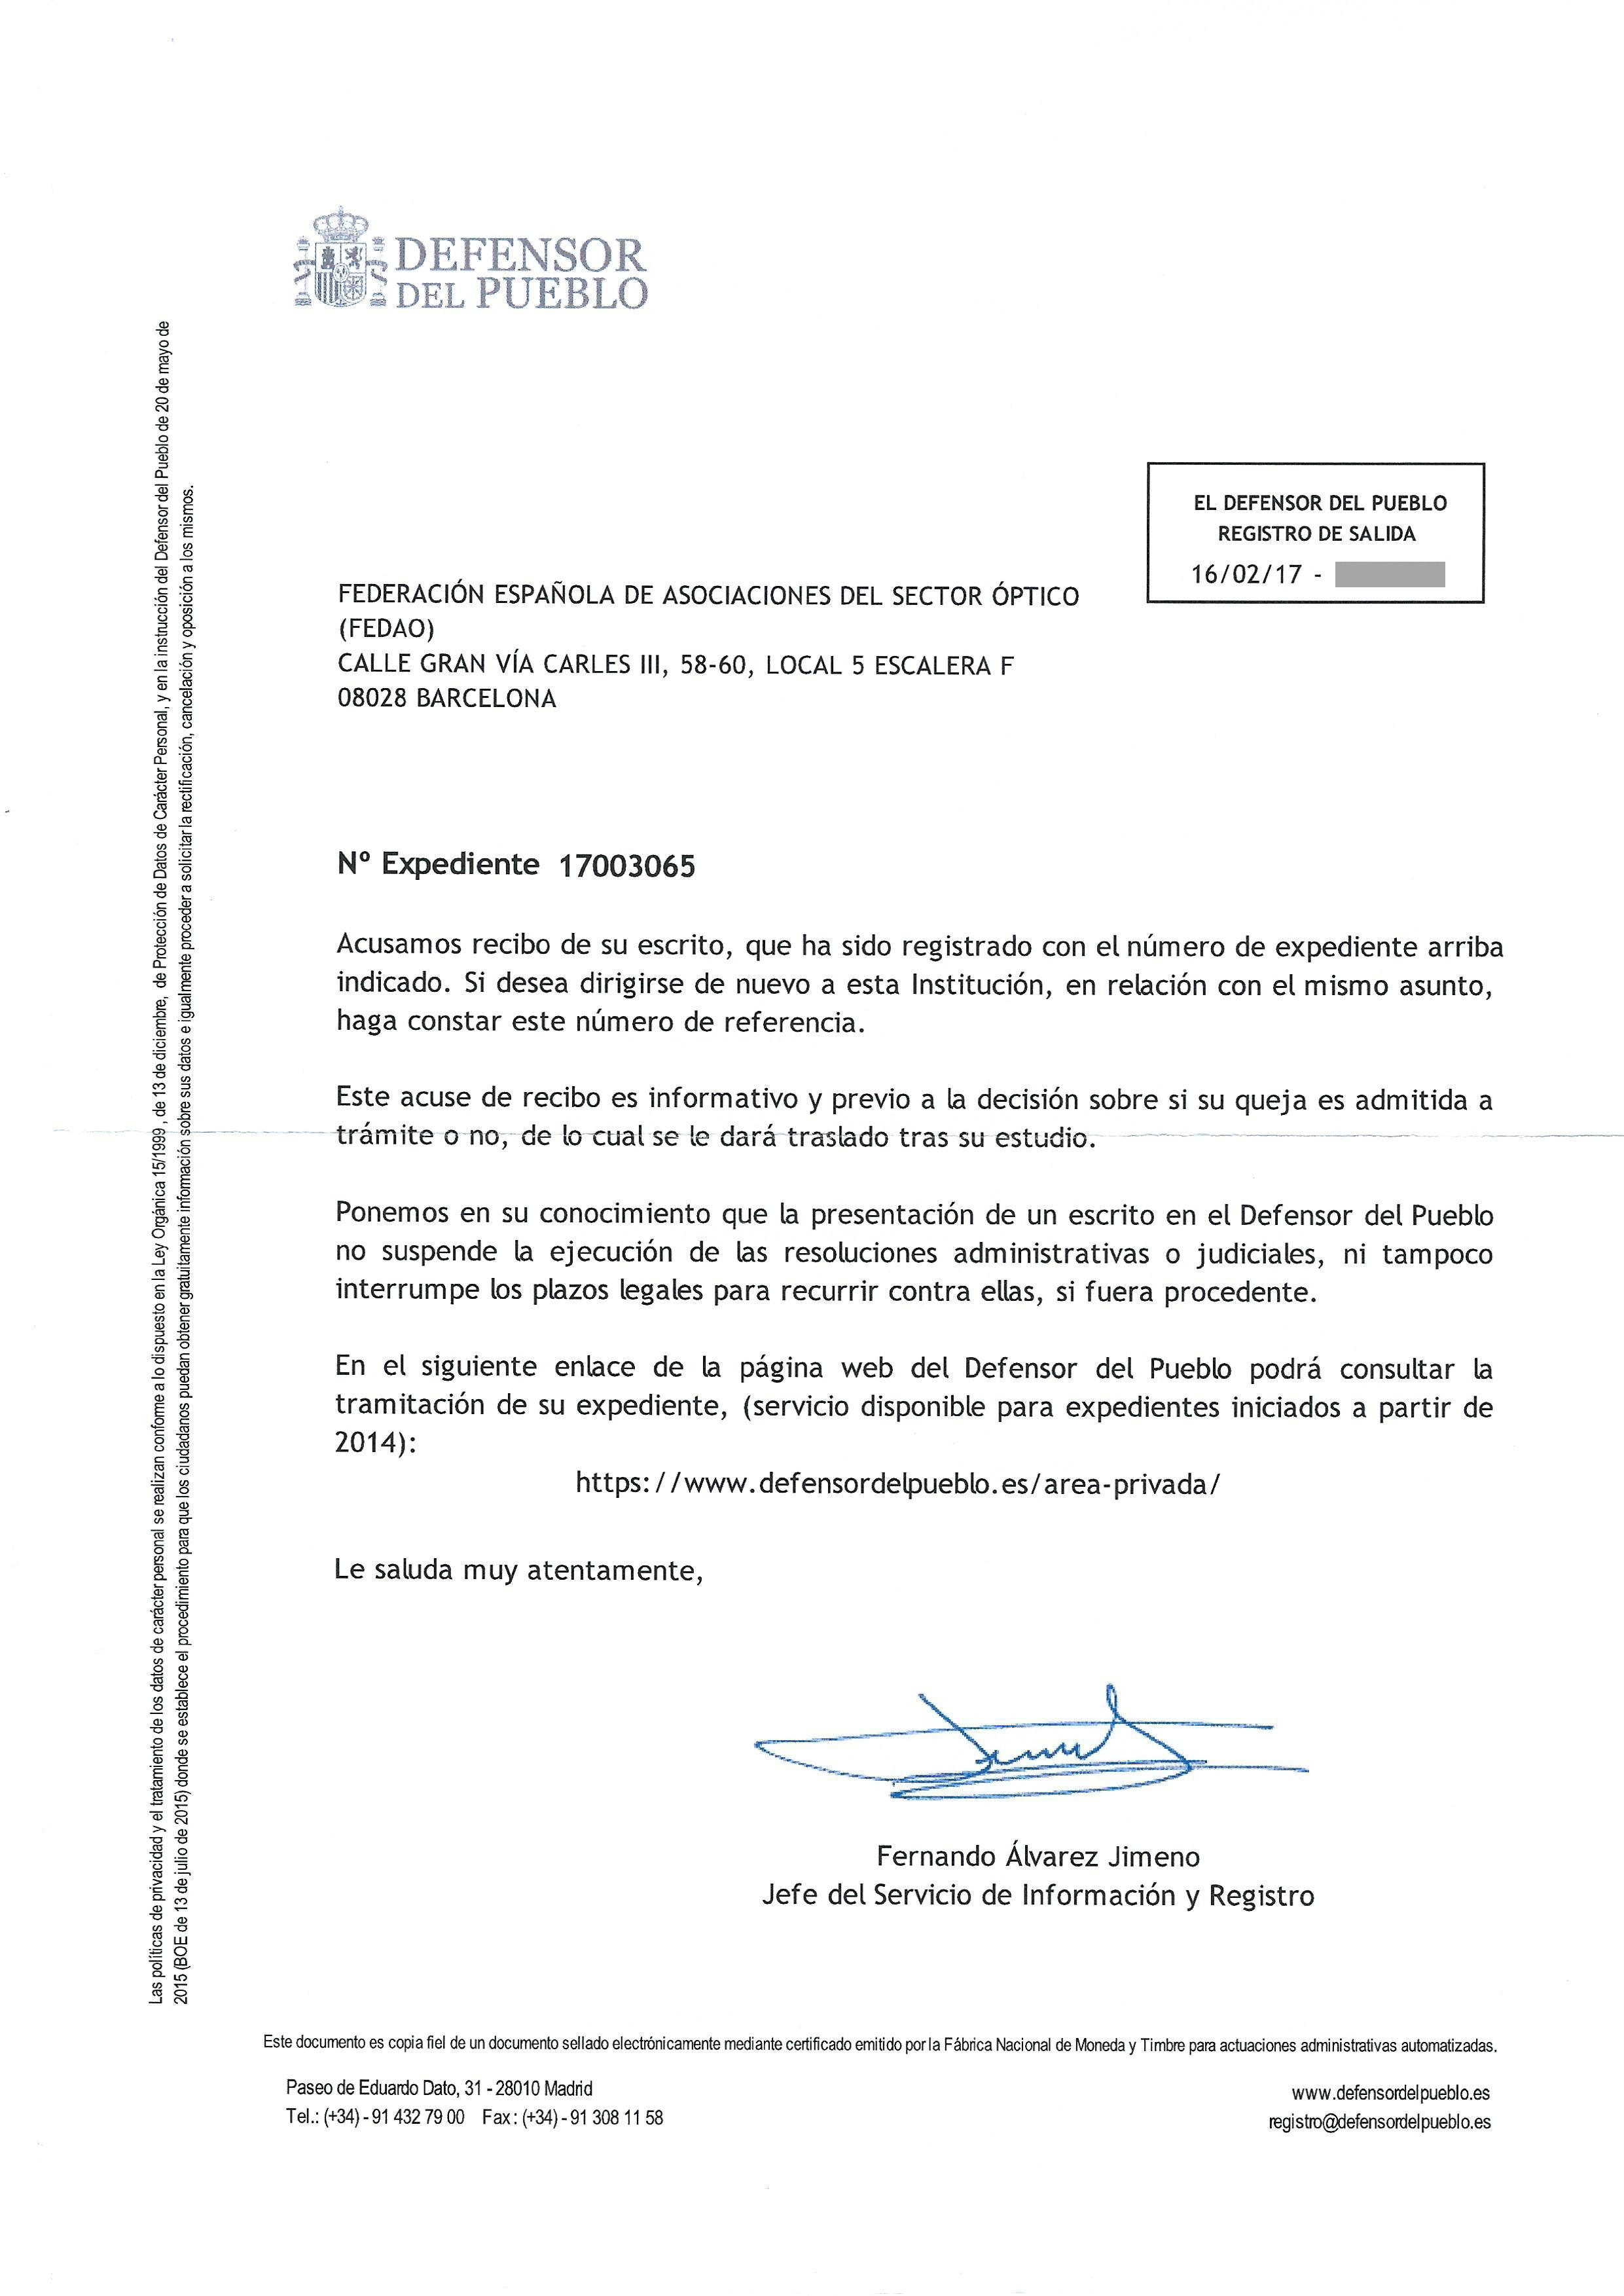 Carta Defensor del Pueblo 16-02-2017